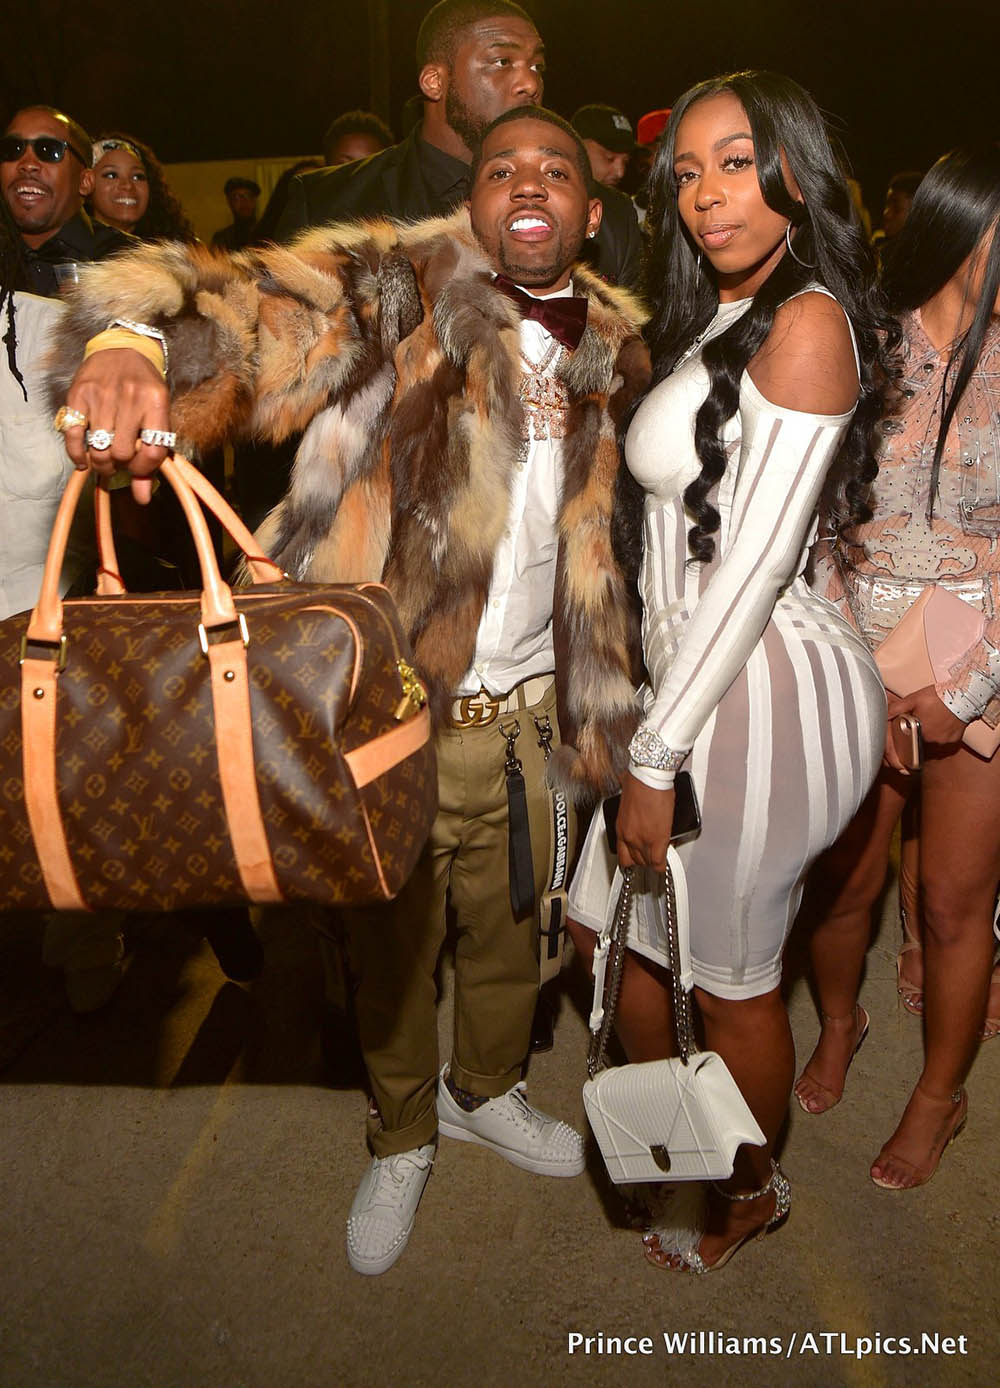 Battery Car For Kids >> PICS: Migos, Adrien Broner, Lil Boosie, Lil Yachty, and More Attend YFN Lucci Birthday Bash